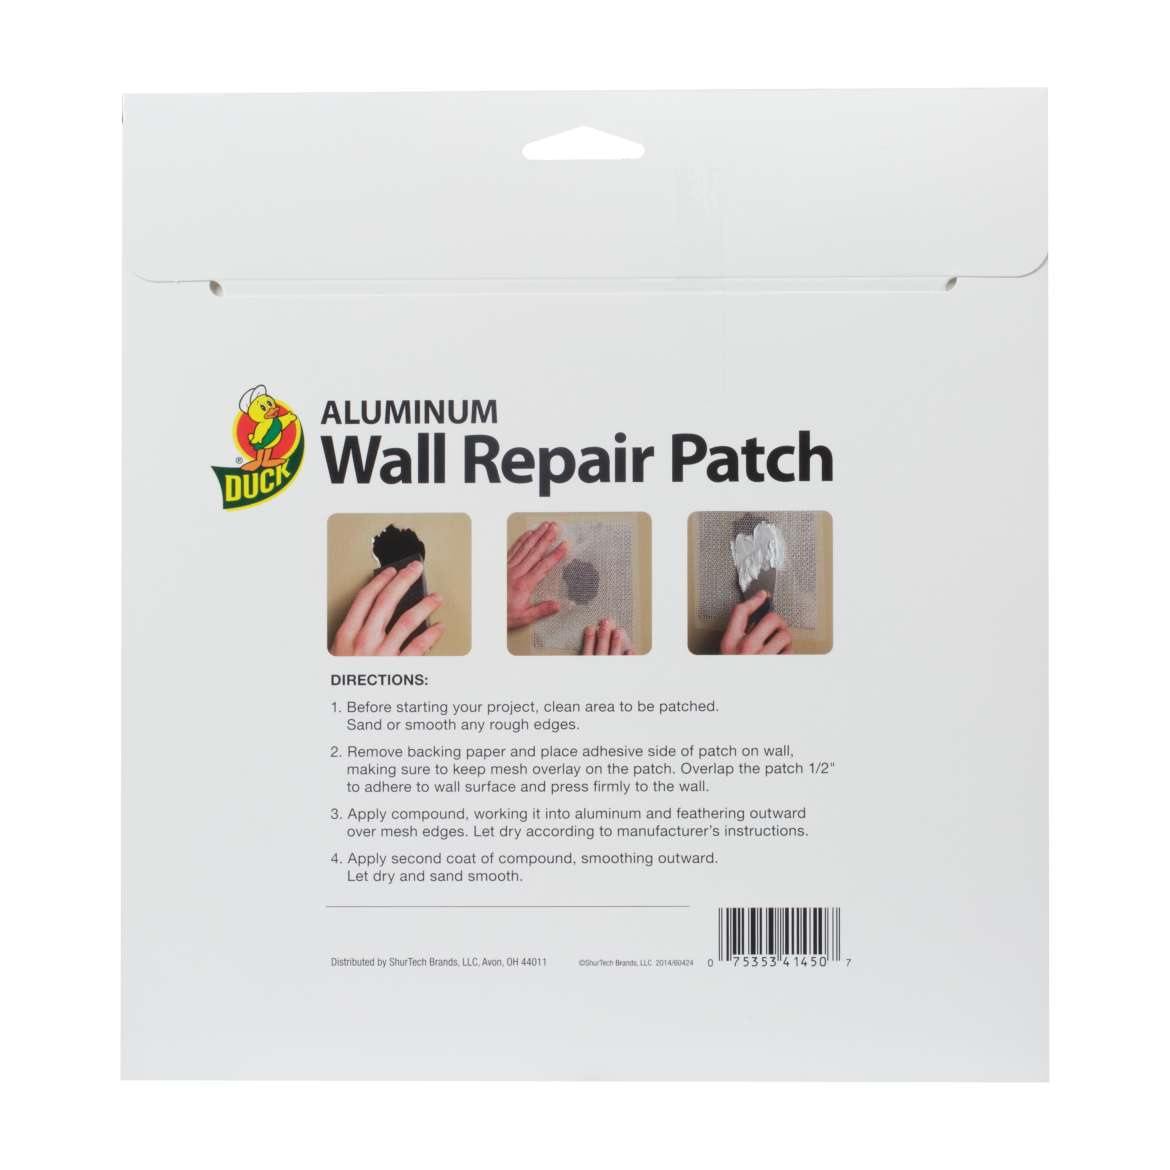 Aluminum Wall Repair Patch